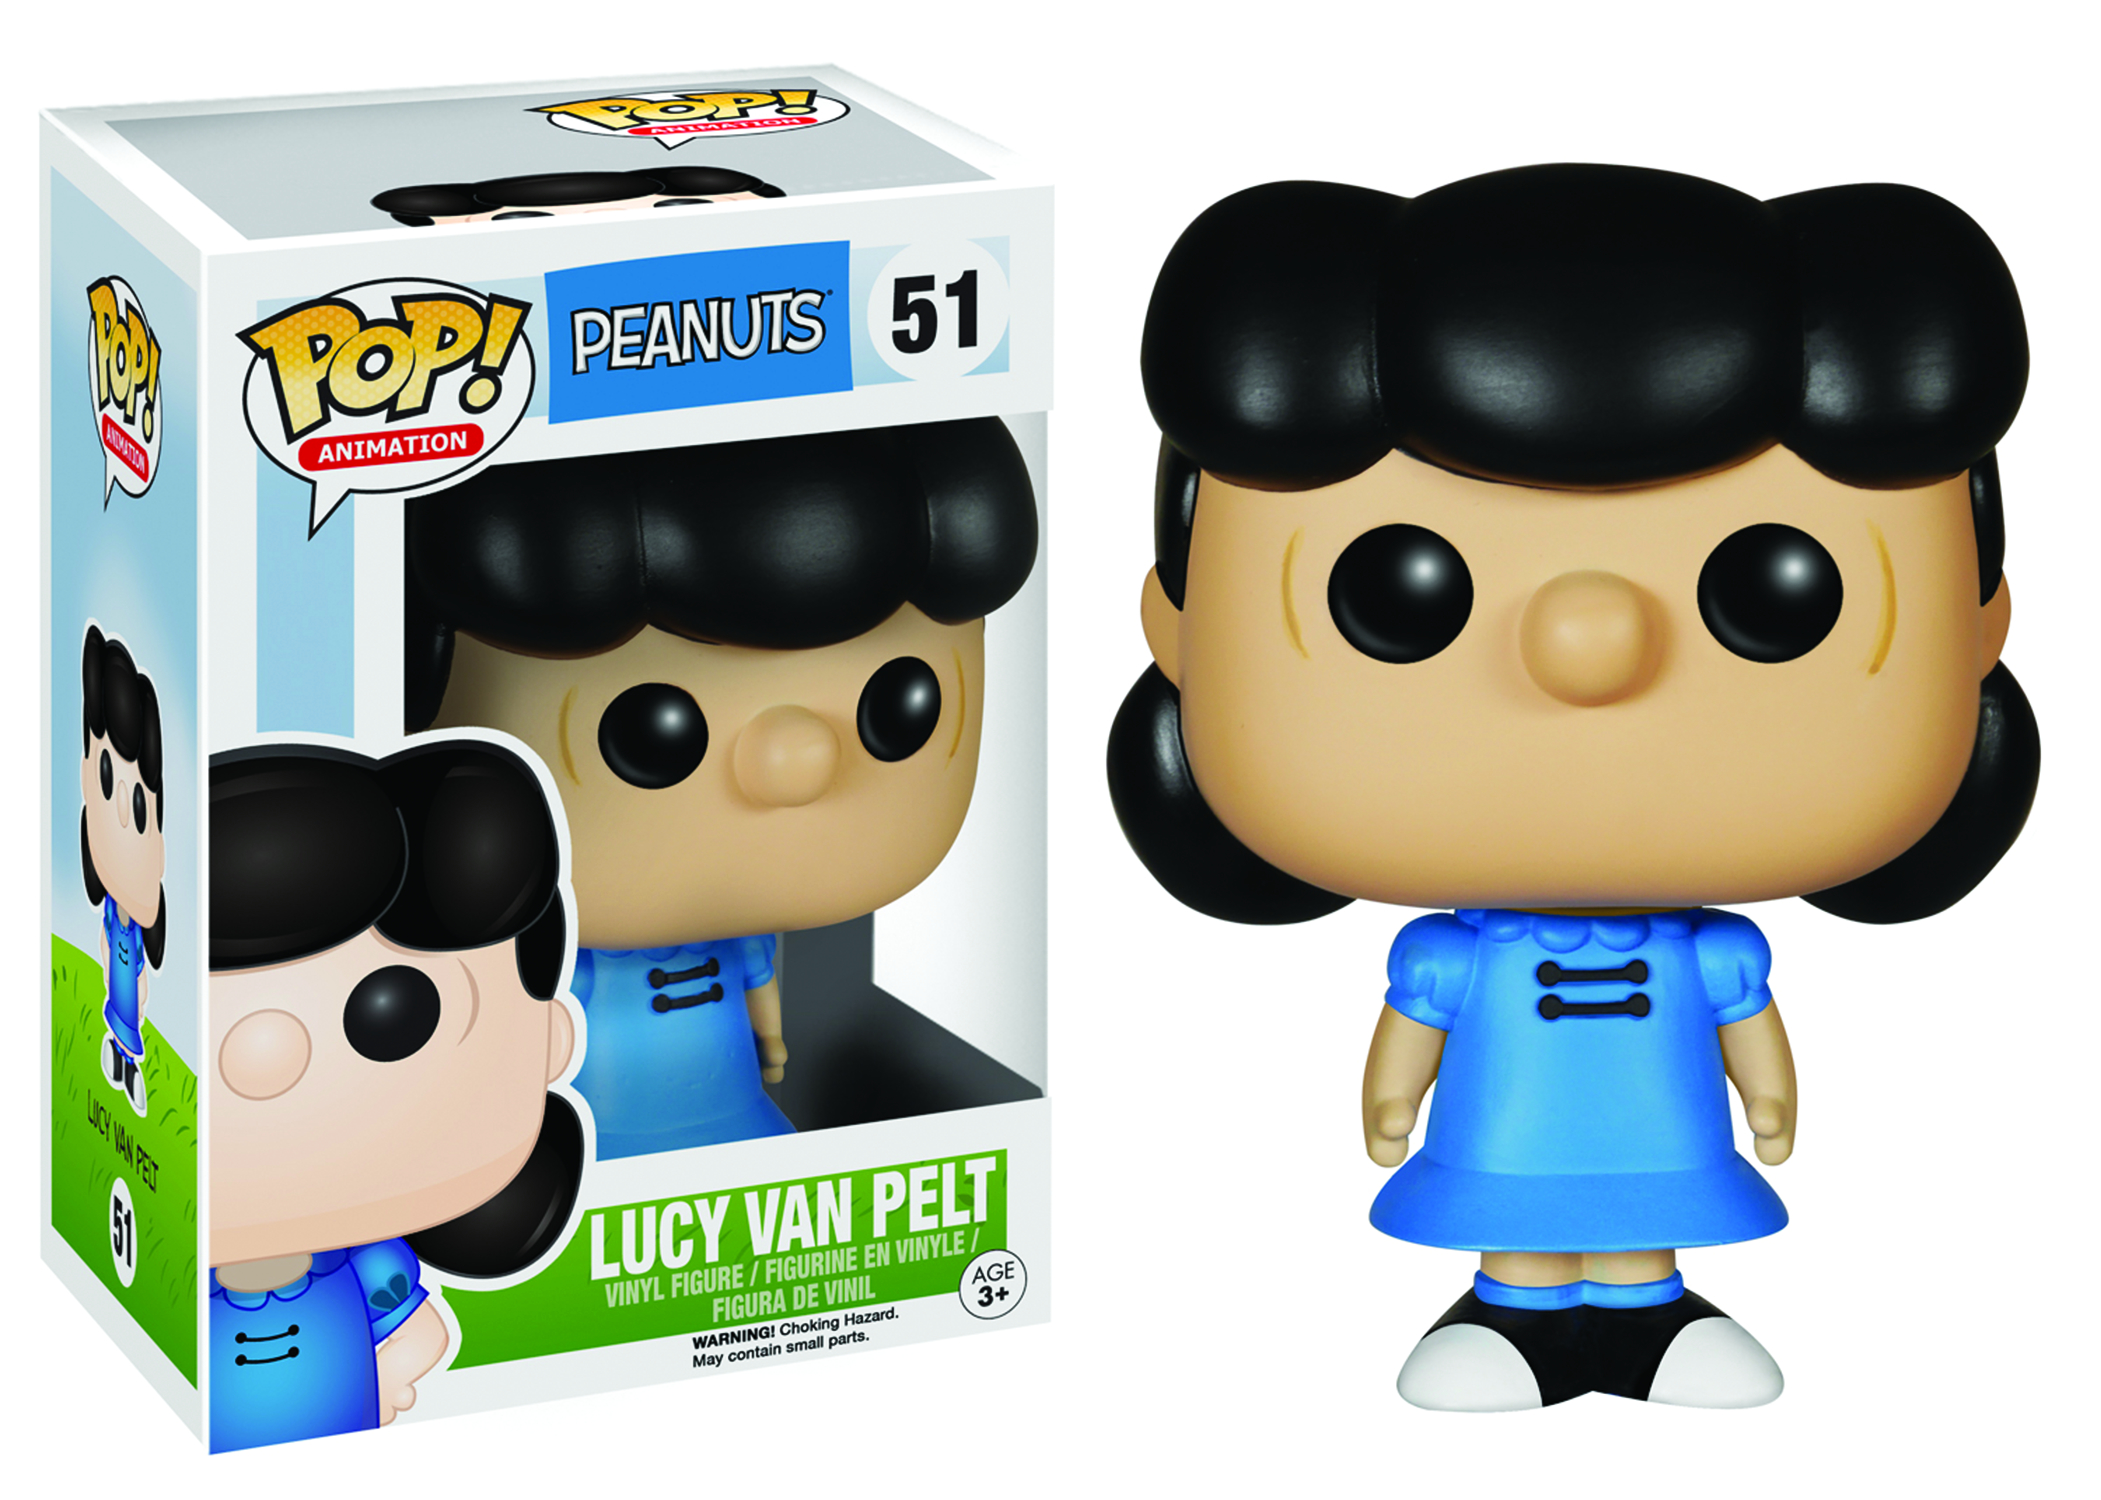 POP PEANUTS LUCY VAN PELT VINYL FIG